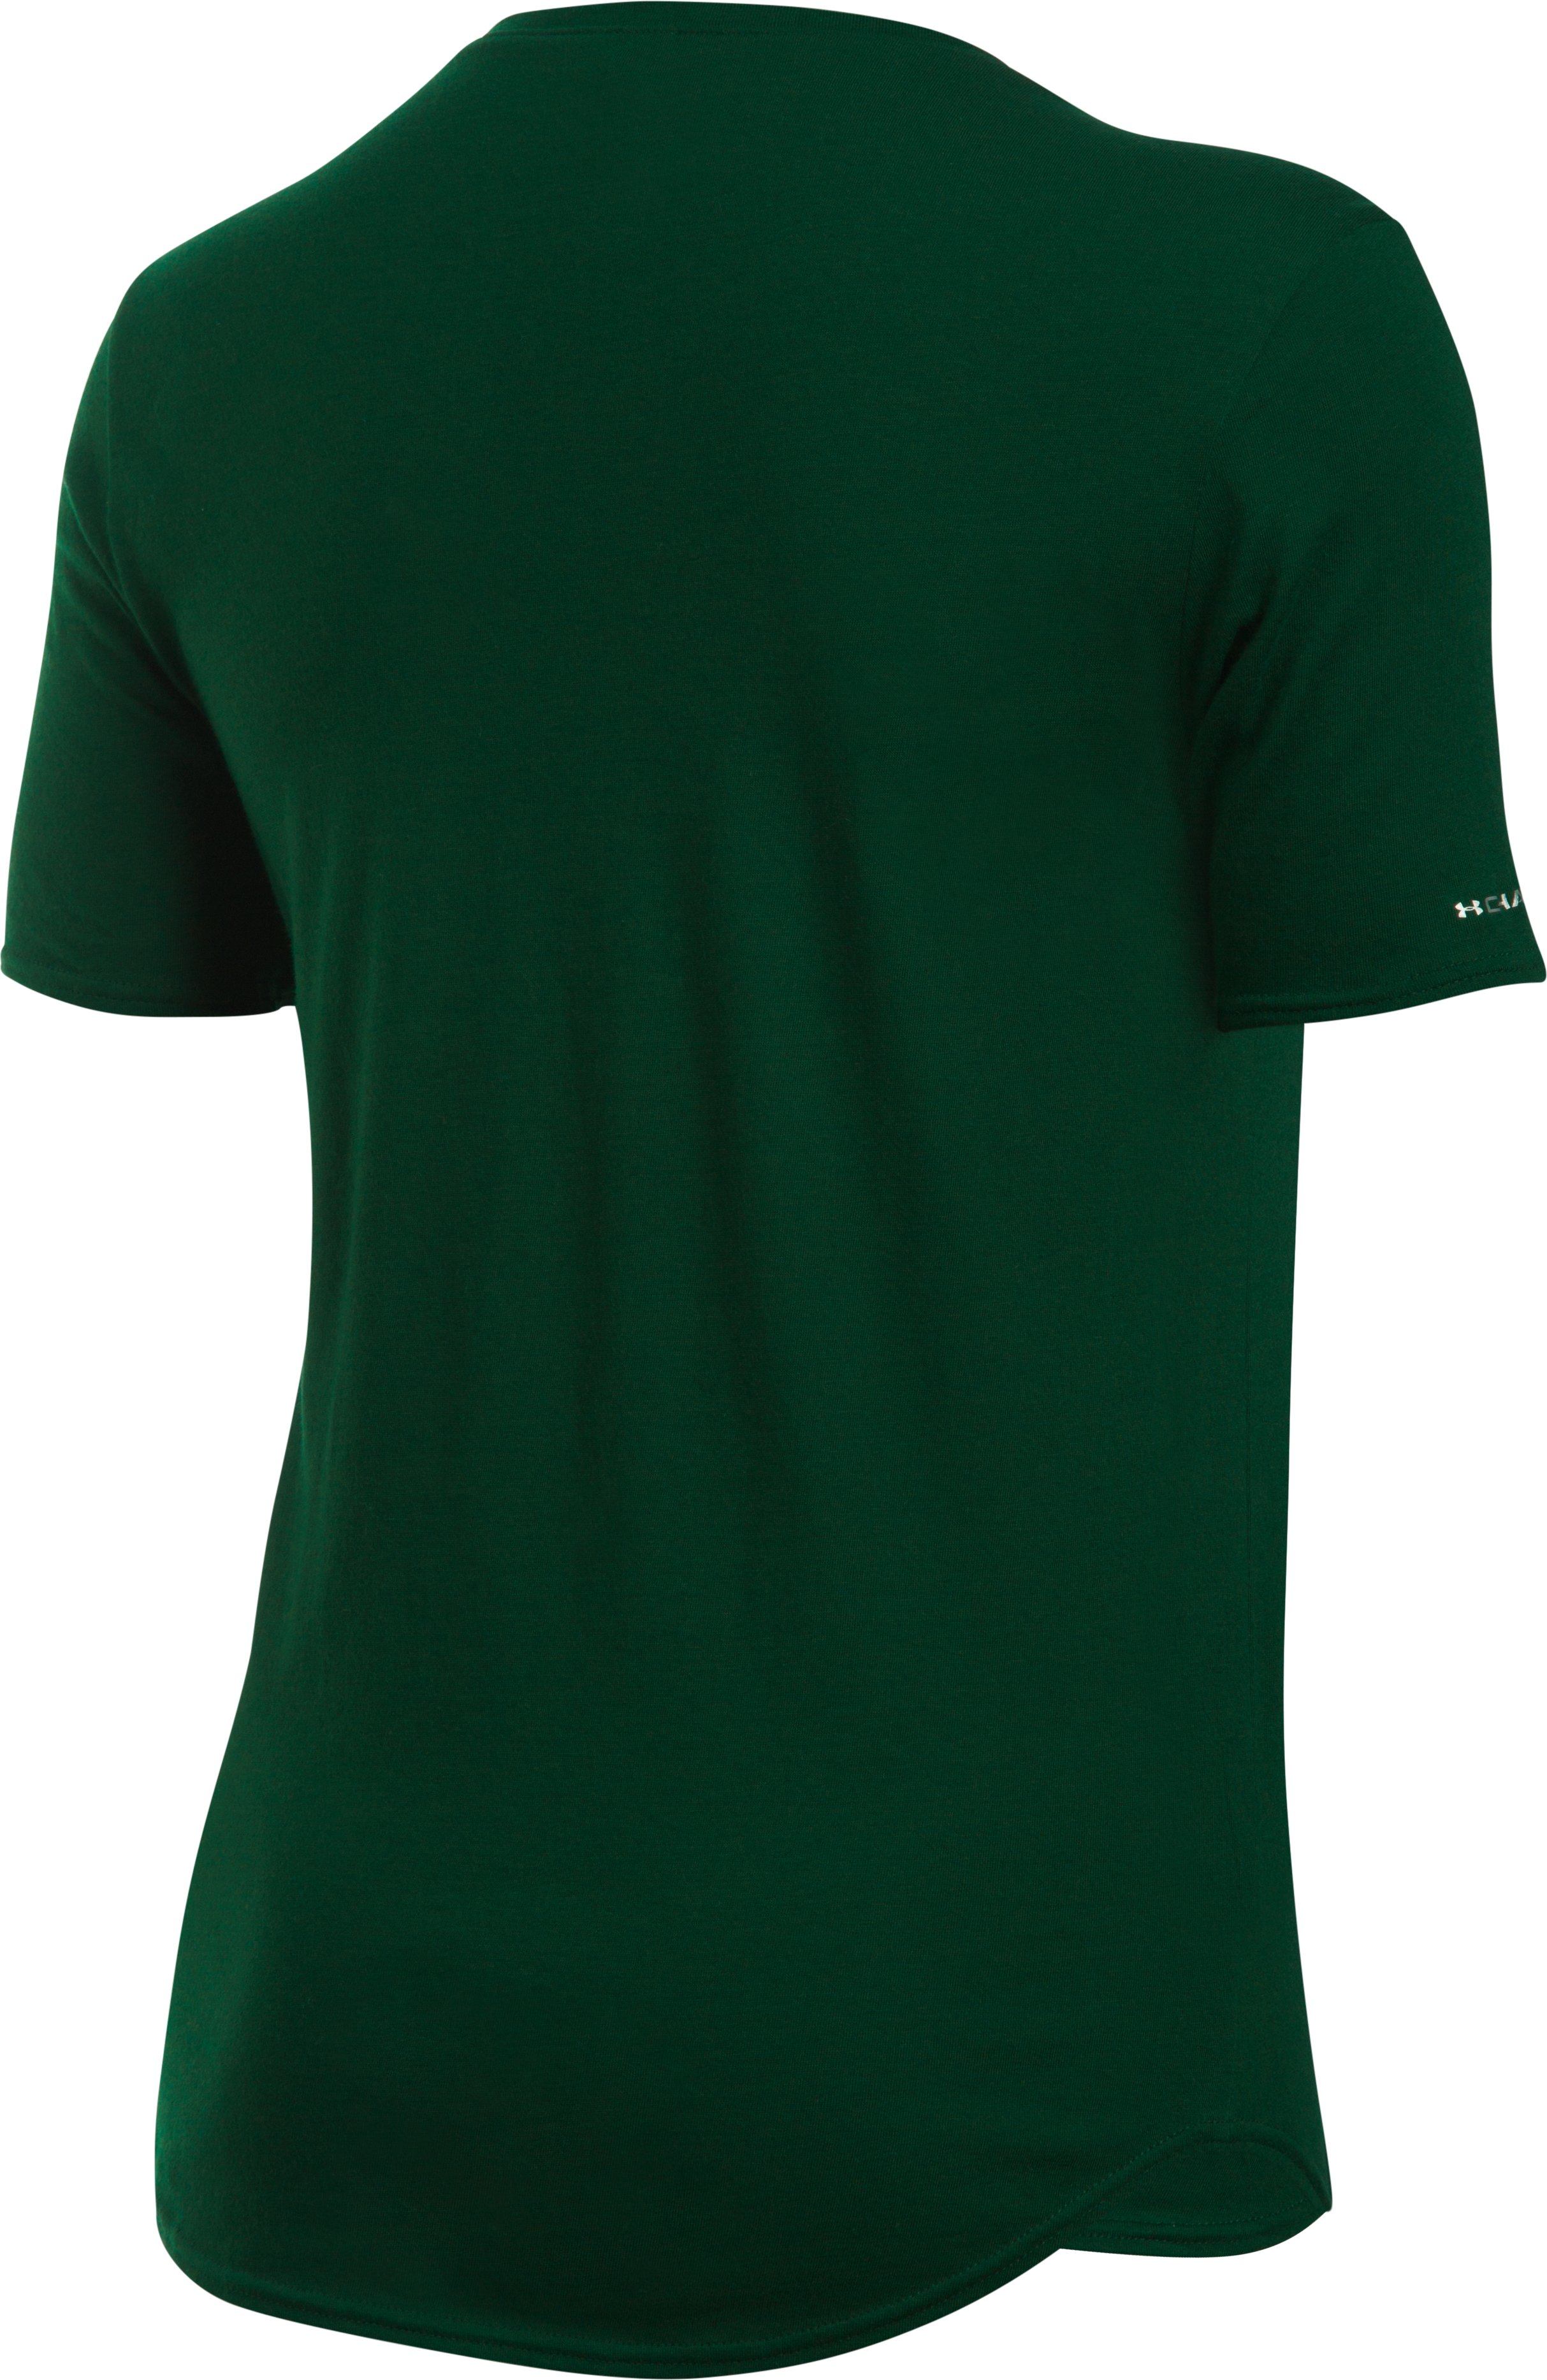 Women's Colorado State Charged Cotton® Short Sleeve T-Shirt, Forest Green